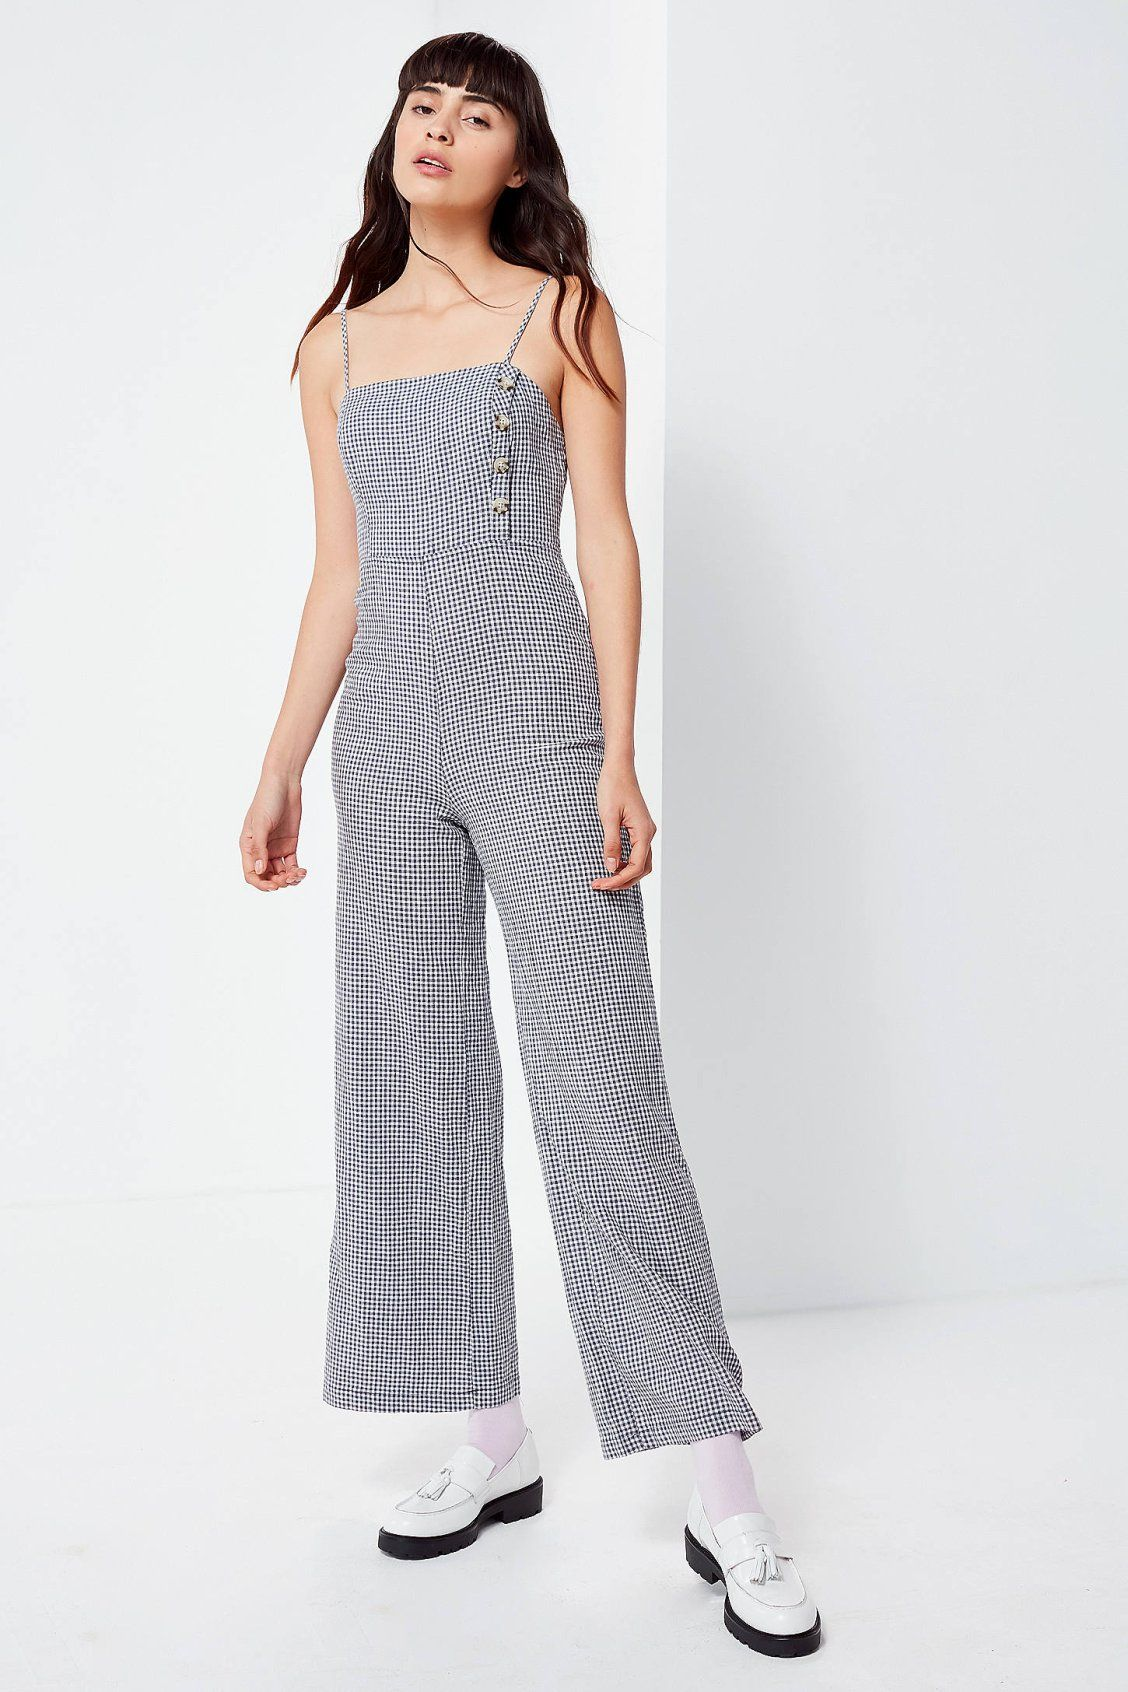 877a04b6491 UO Straight-Neck Linen Button-Down Jumpsuit